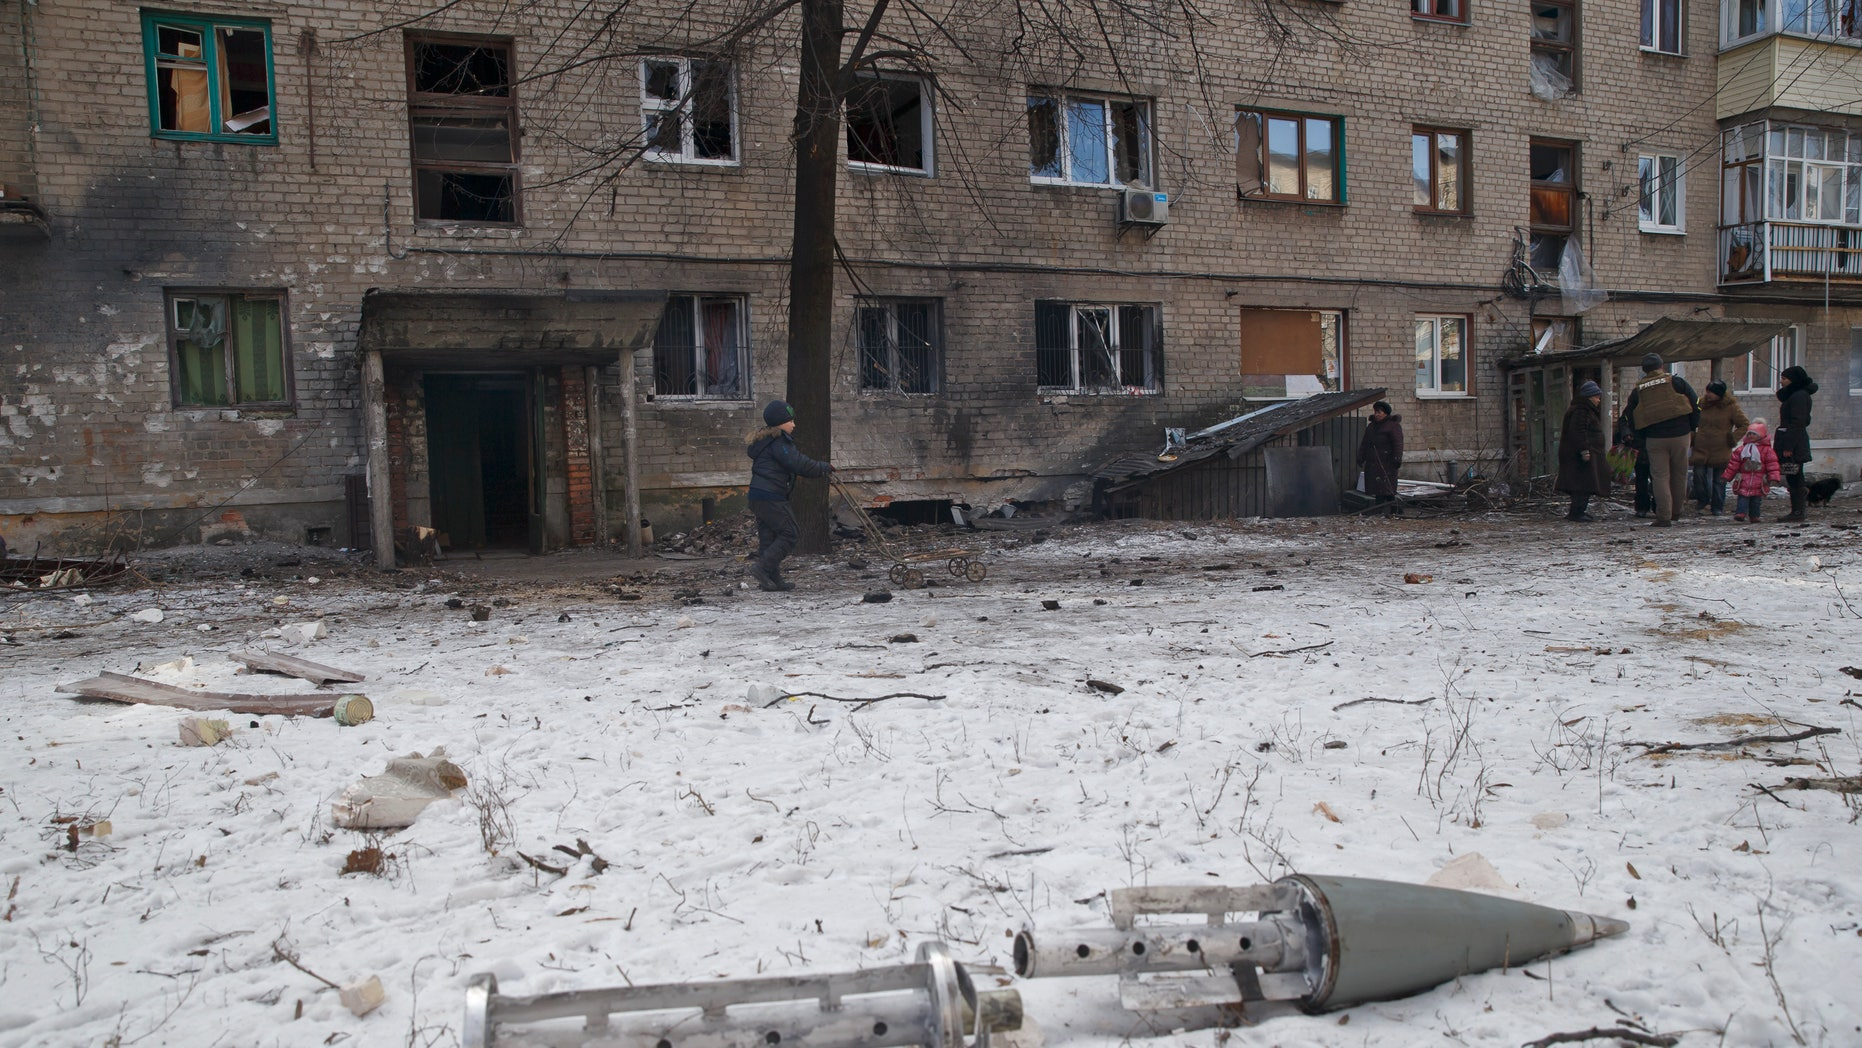 Feb. 20, 2015 - The remains of a rocket outside damaged apartment building in Debaltseve, Ukraine. After weeks of relentless fighting, Debaltseve fell Wednesday to Russia-backed separatists.